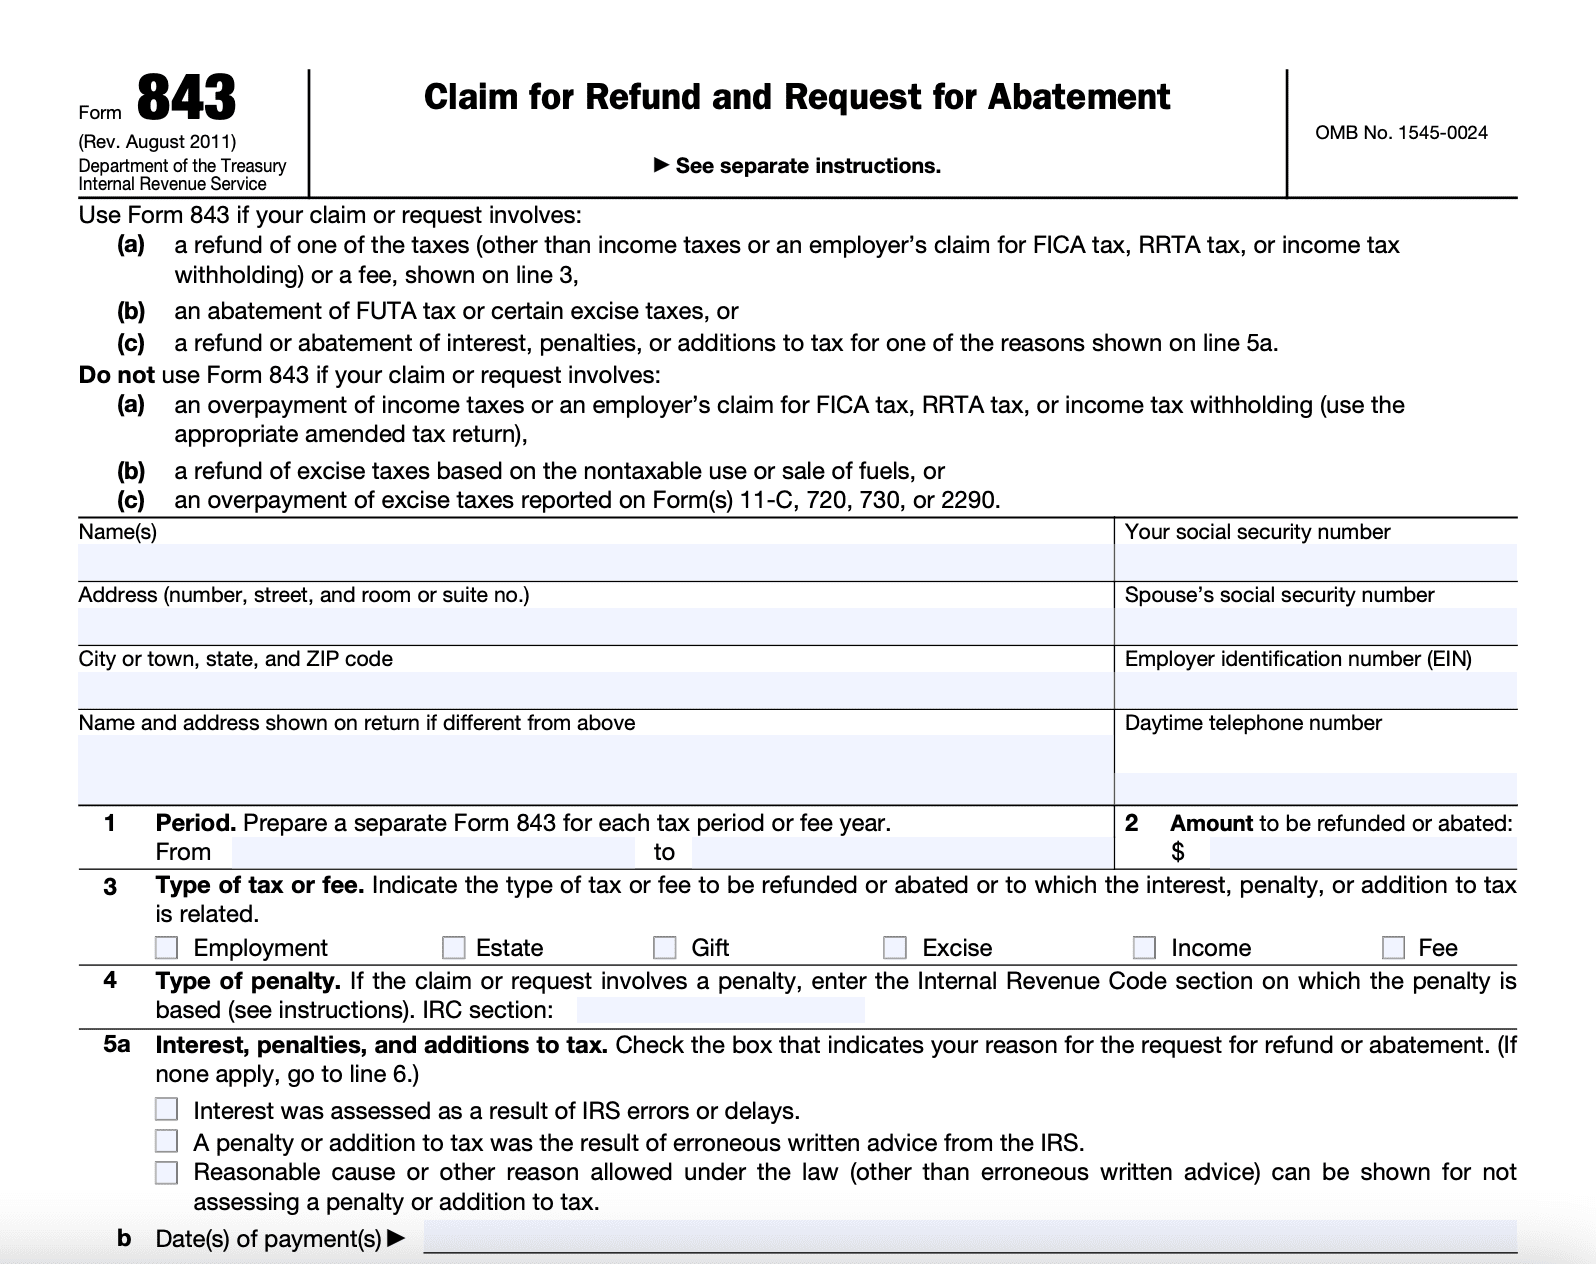 IRS Form 843: Claim for Refund and Request for Abatement